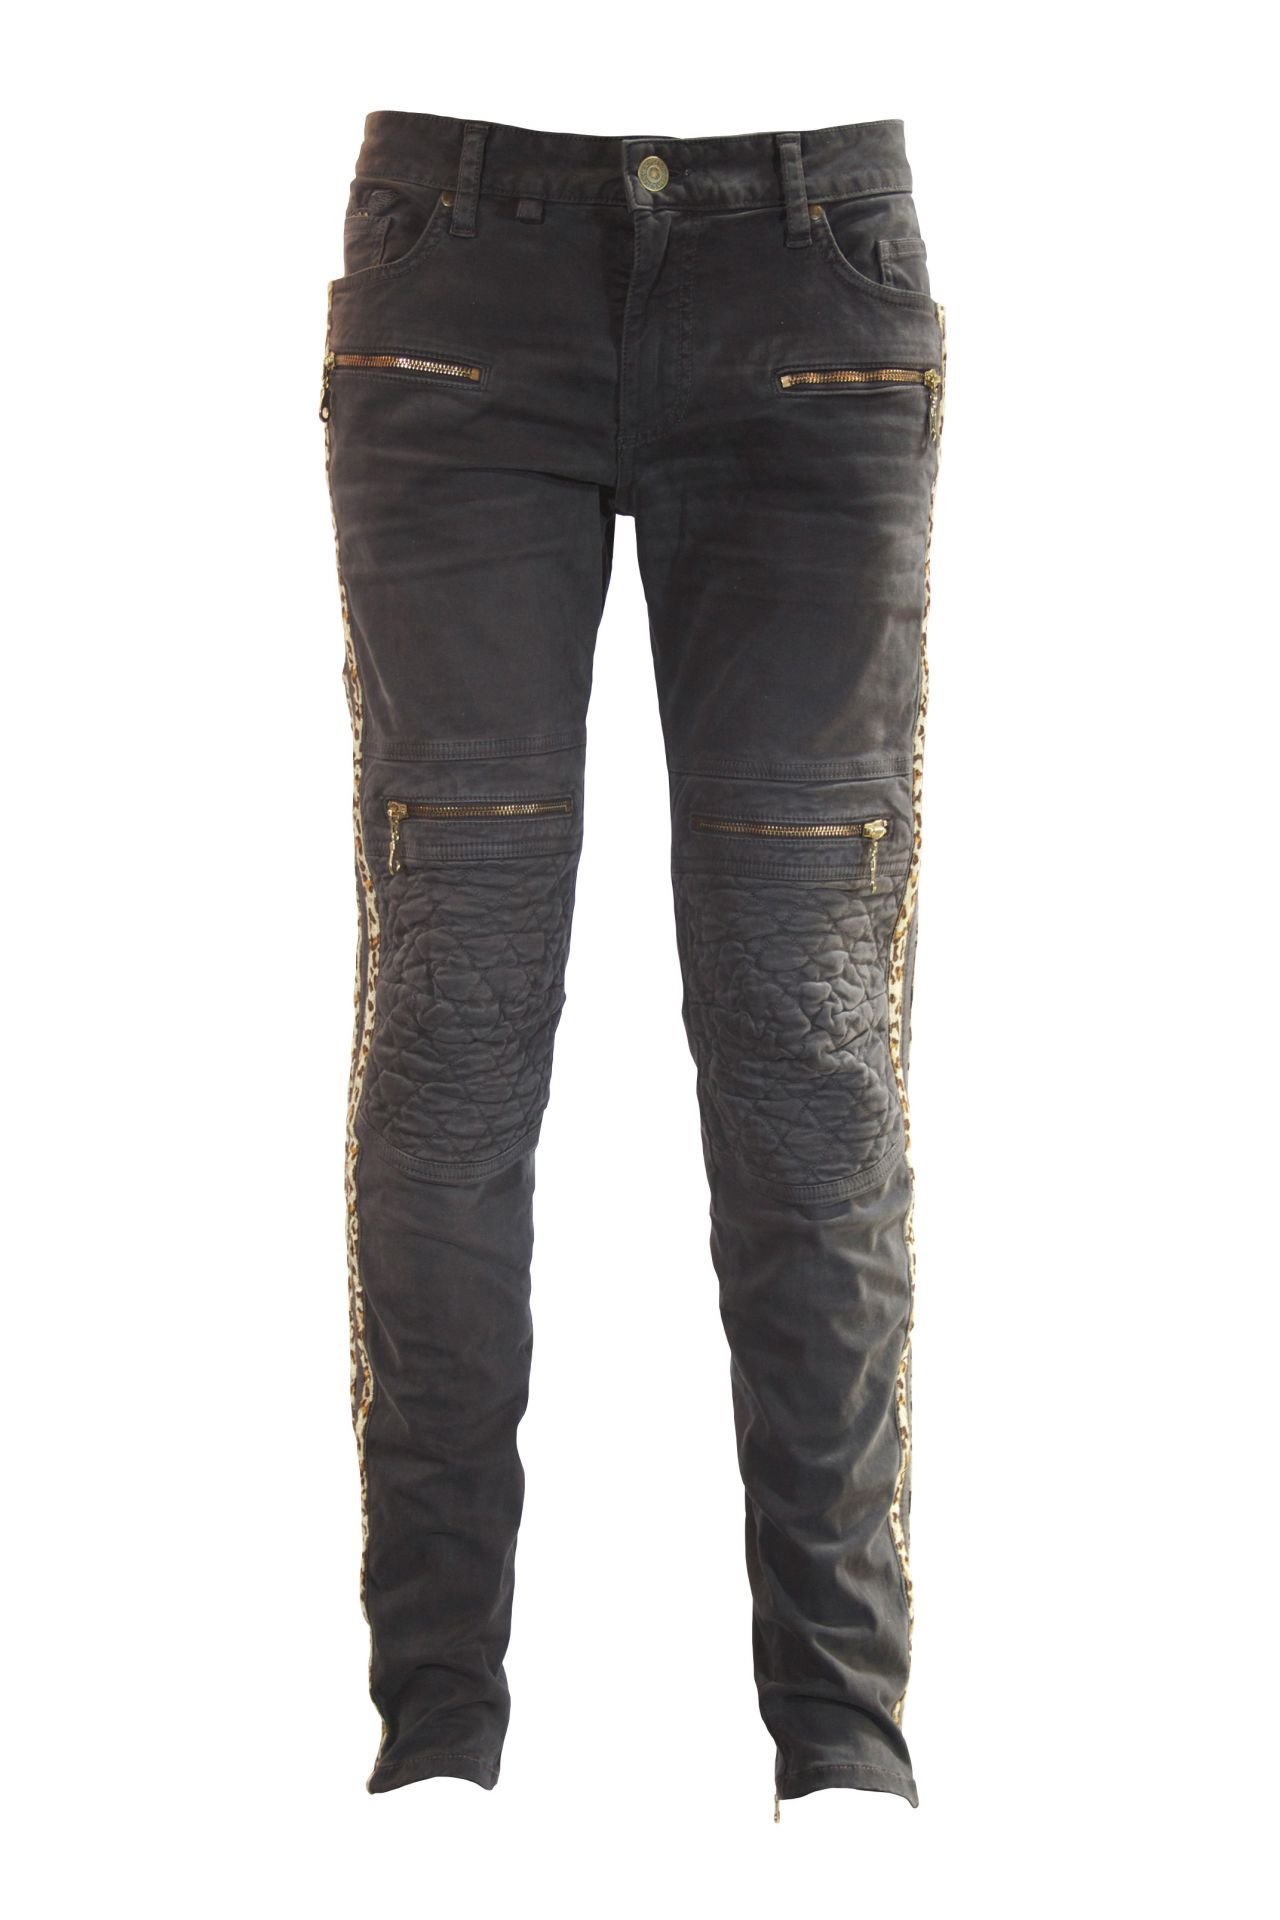 RACER JEAN IN CHARCOAL BLACK WITH CHEETAH STRIPES